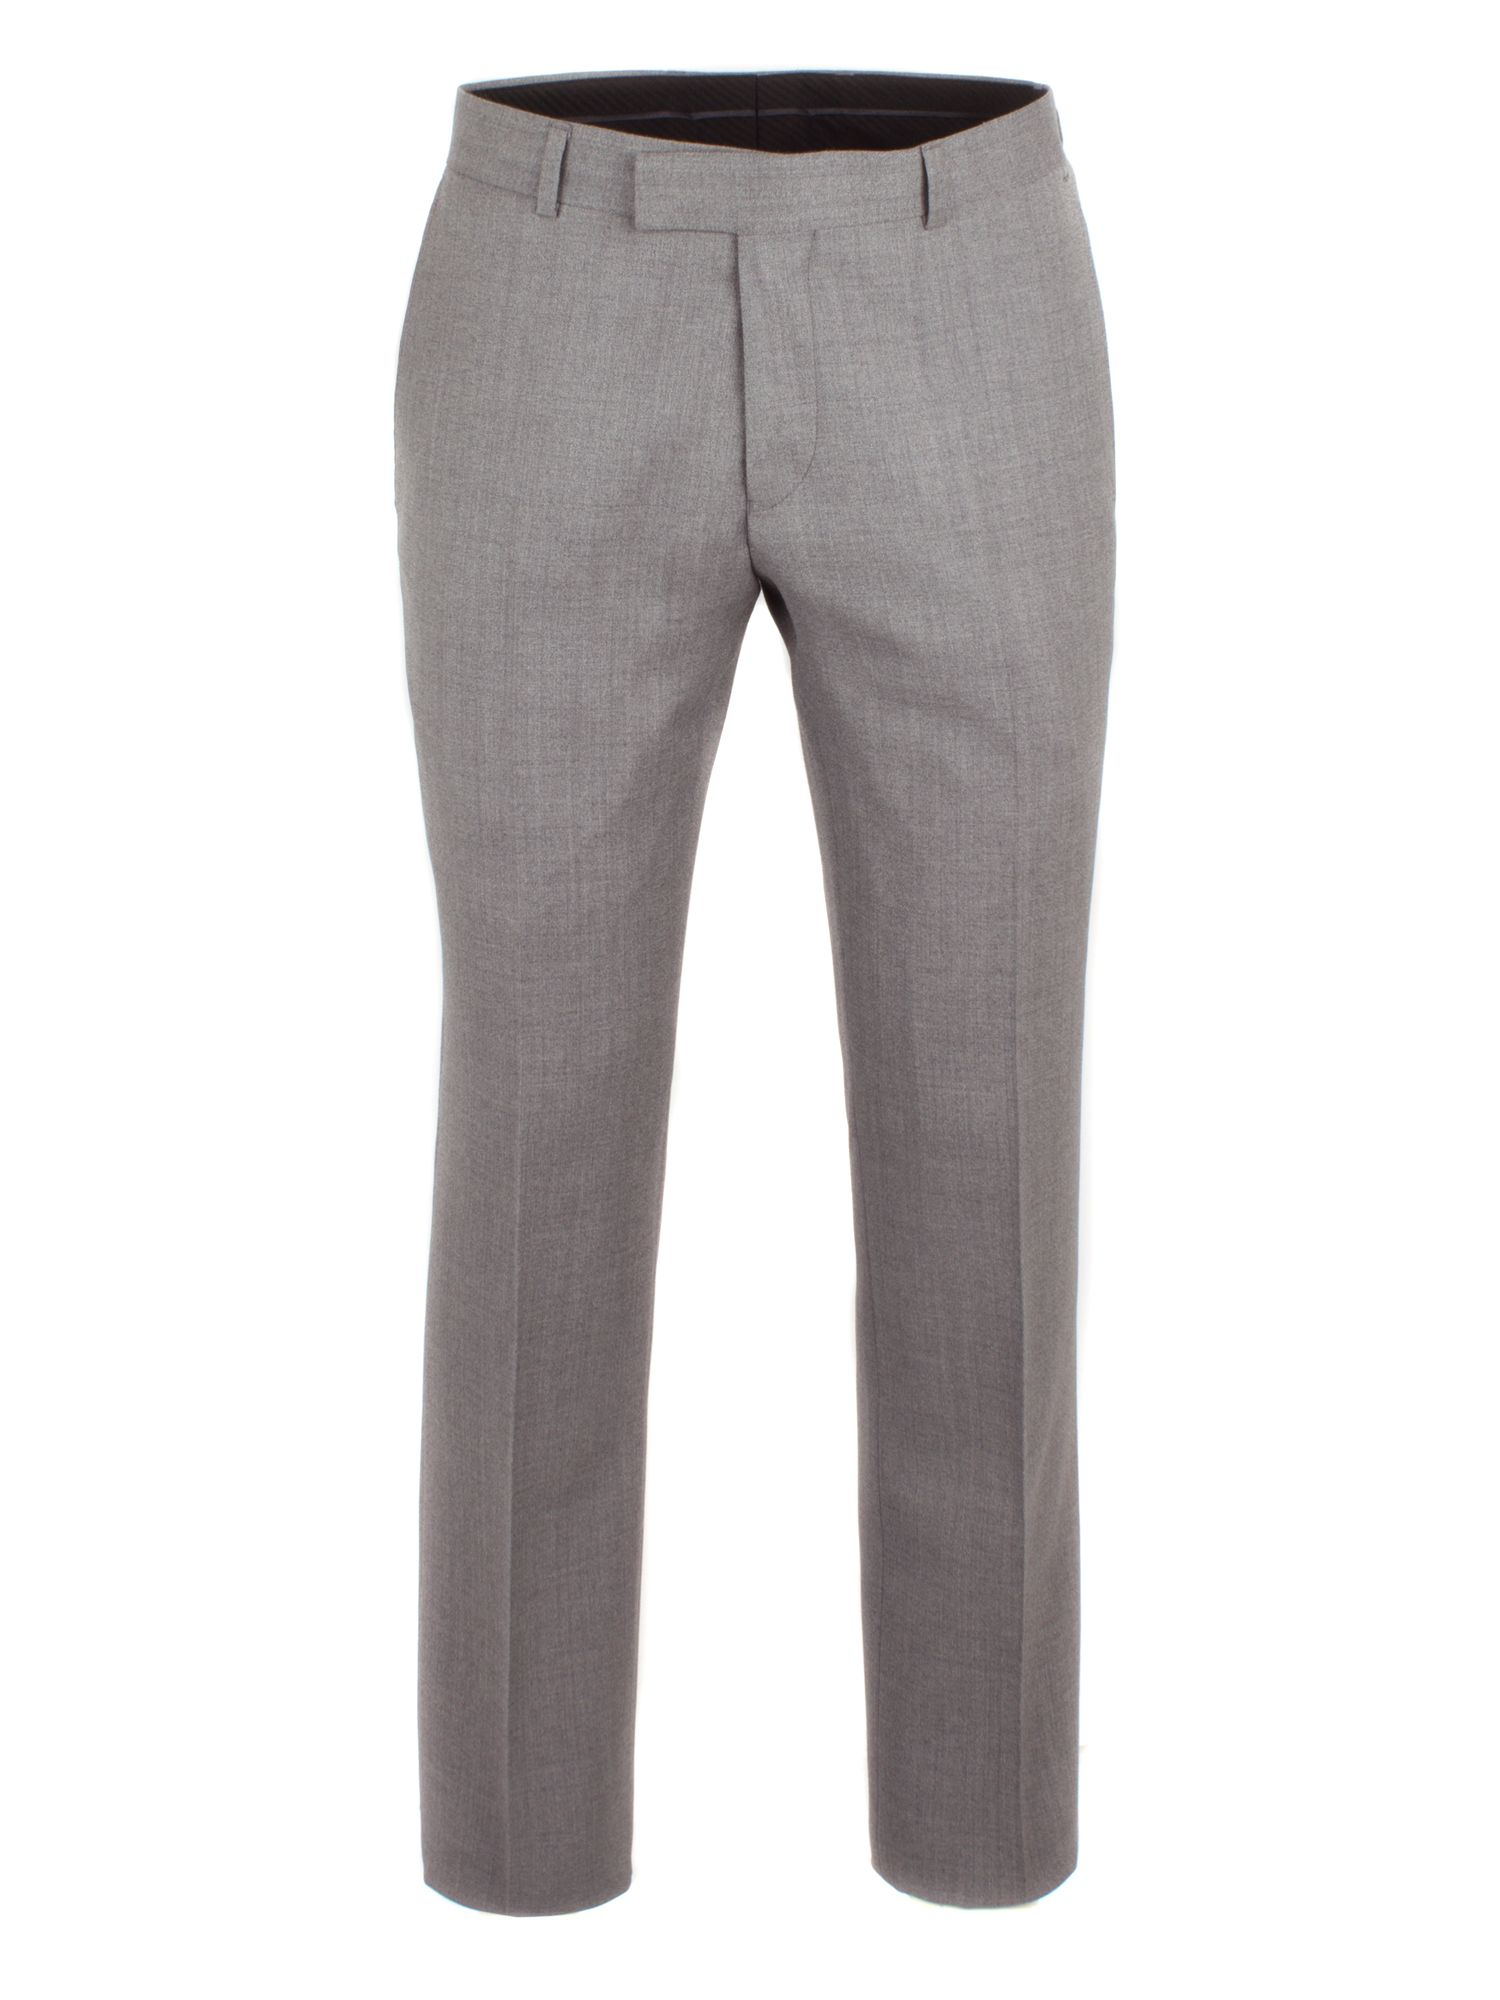 Alexandre of England Men's Alexandre of England Lothbury Grey Crepe Trouser, Grey